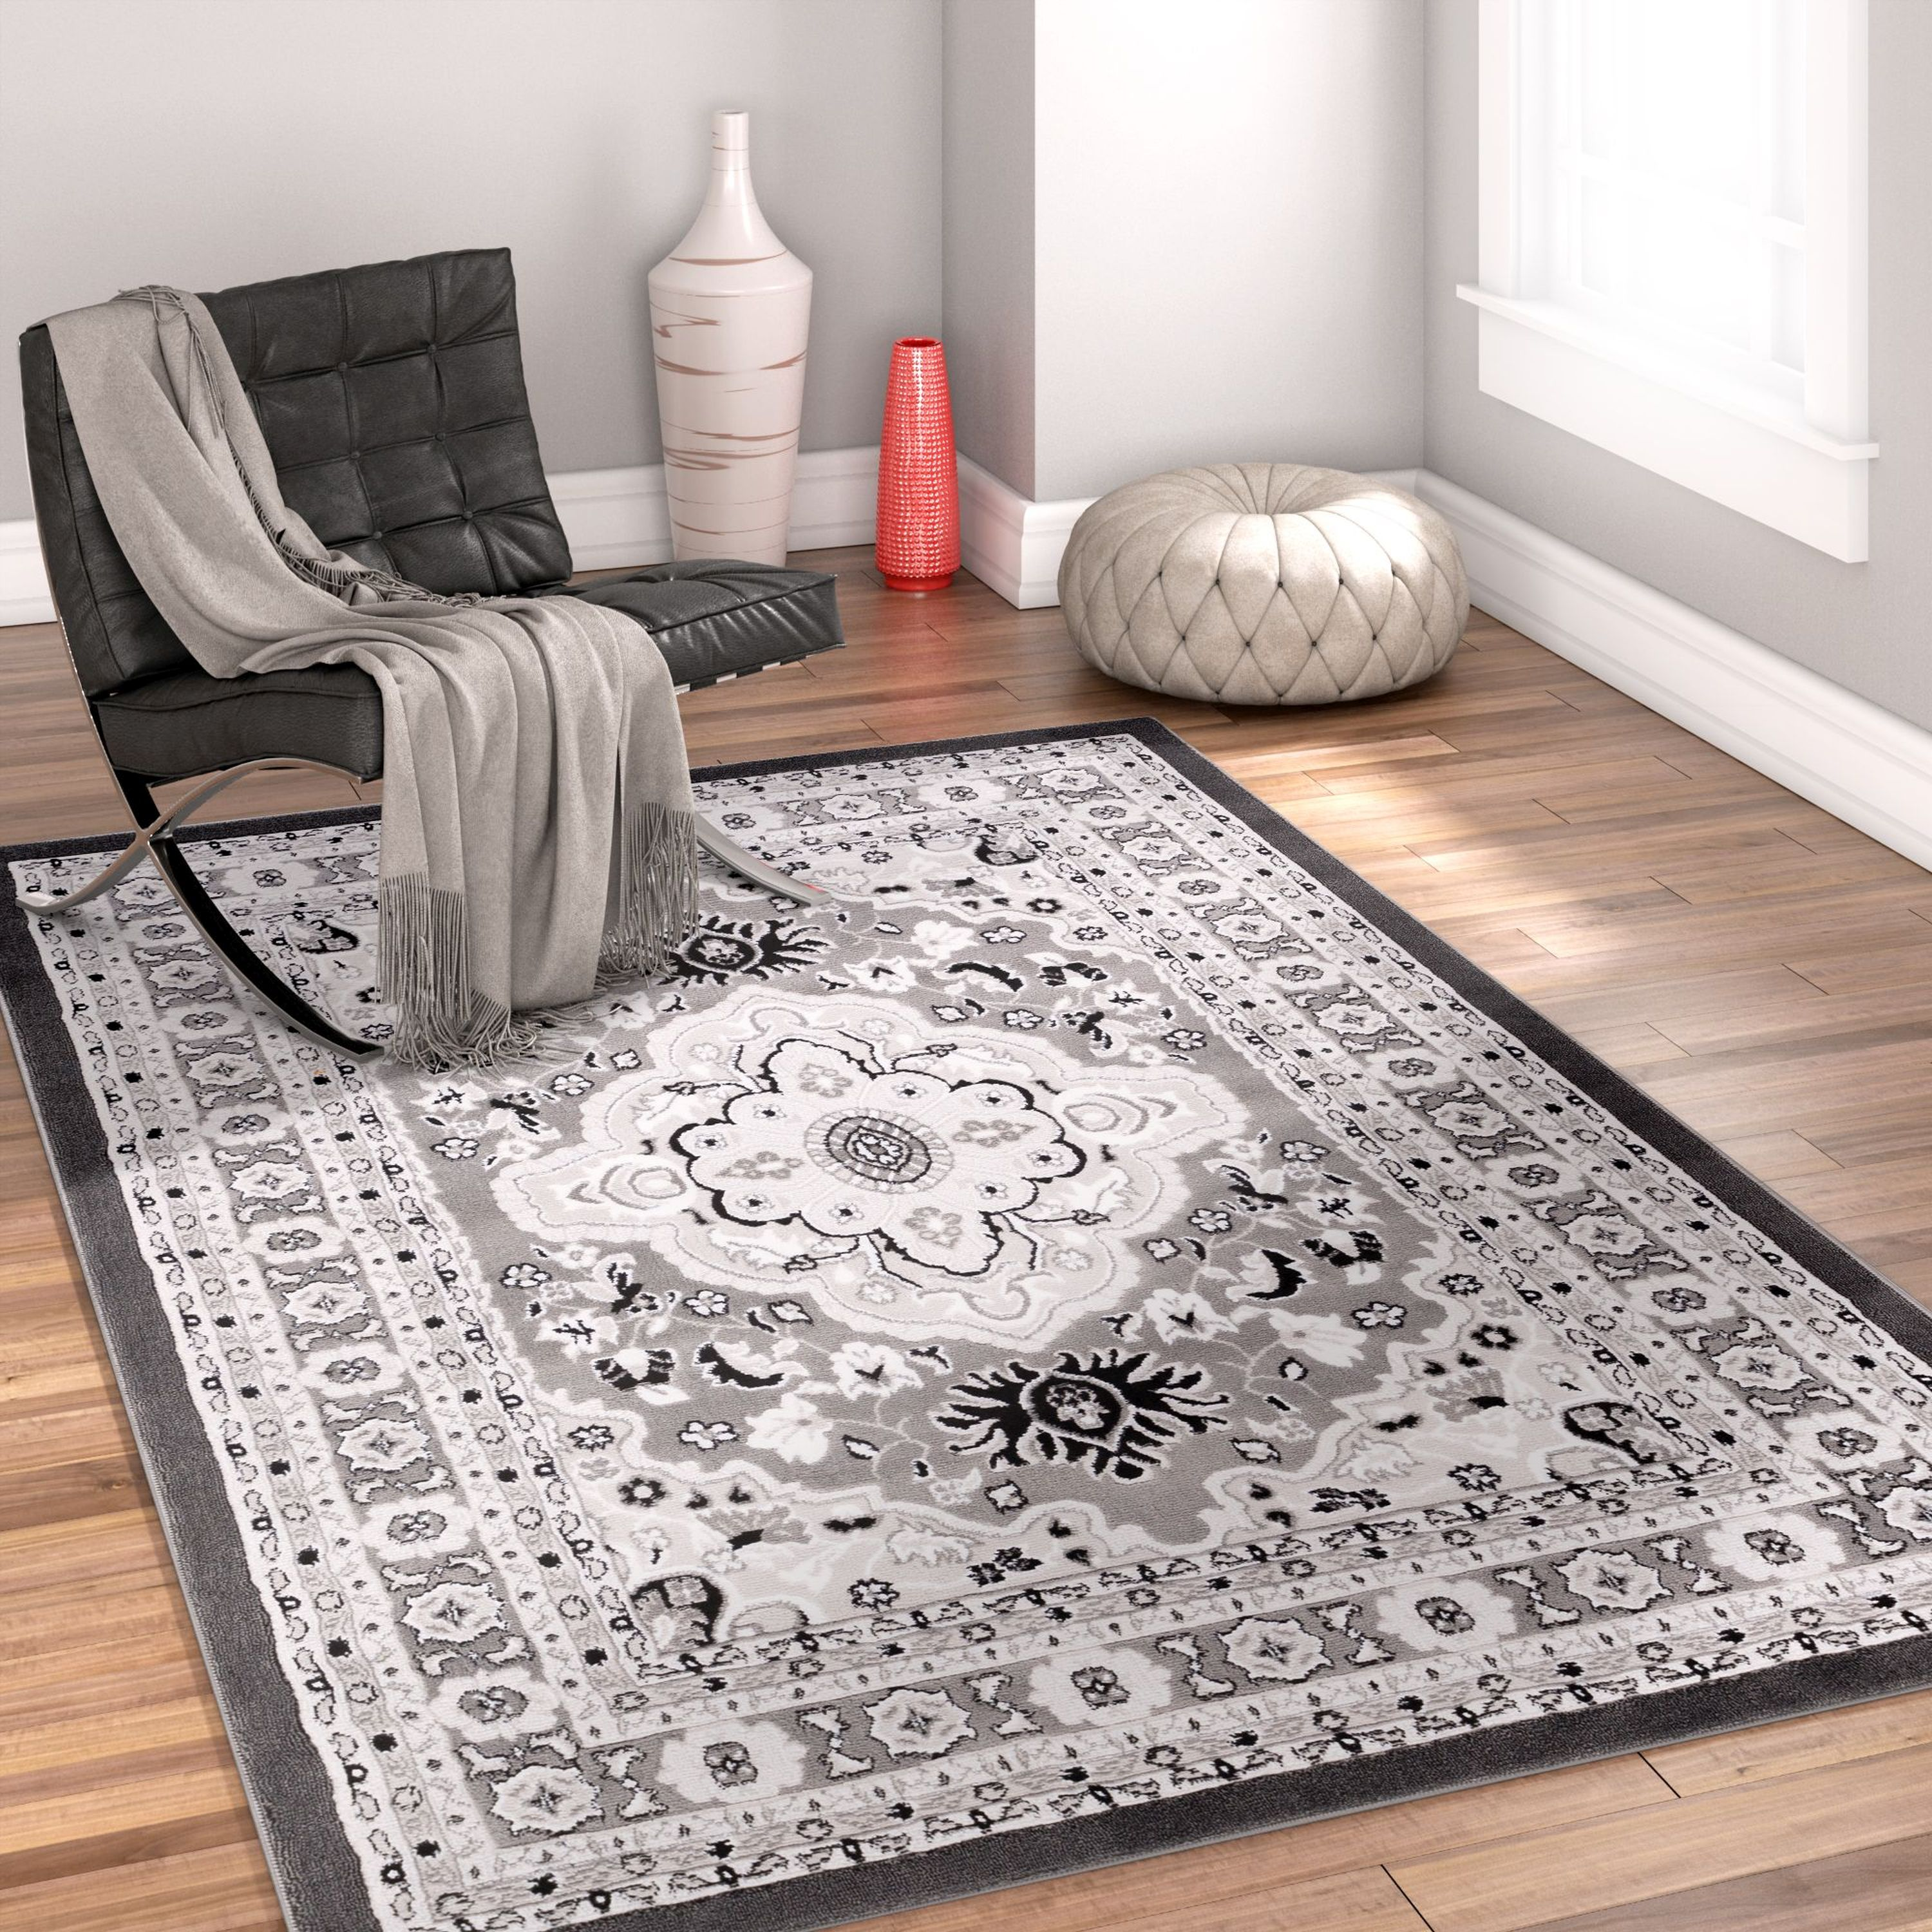 "Well Woven Dulcet Raja Traditional Medallion Grey 7'10"" x 9'10"" Area Rug"